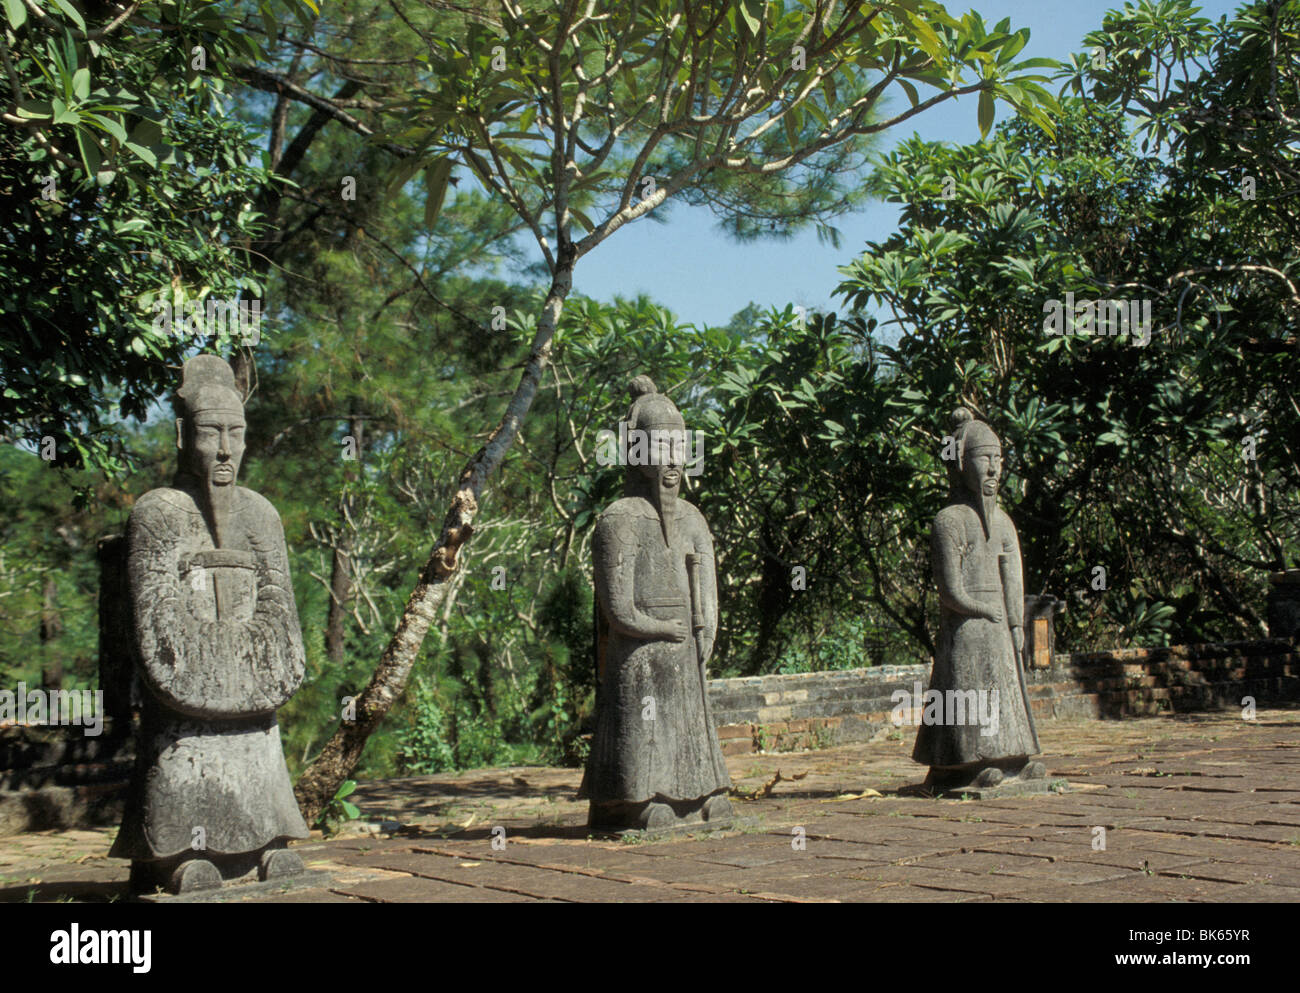 Statues at Royal Mausoleums, Hue, Vietnam, Indochina, Southeast Asia, Asia - Stock Image